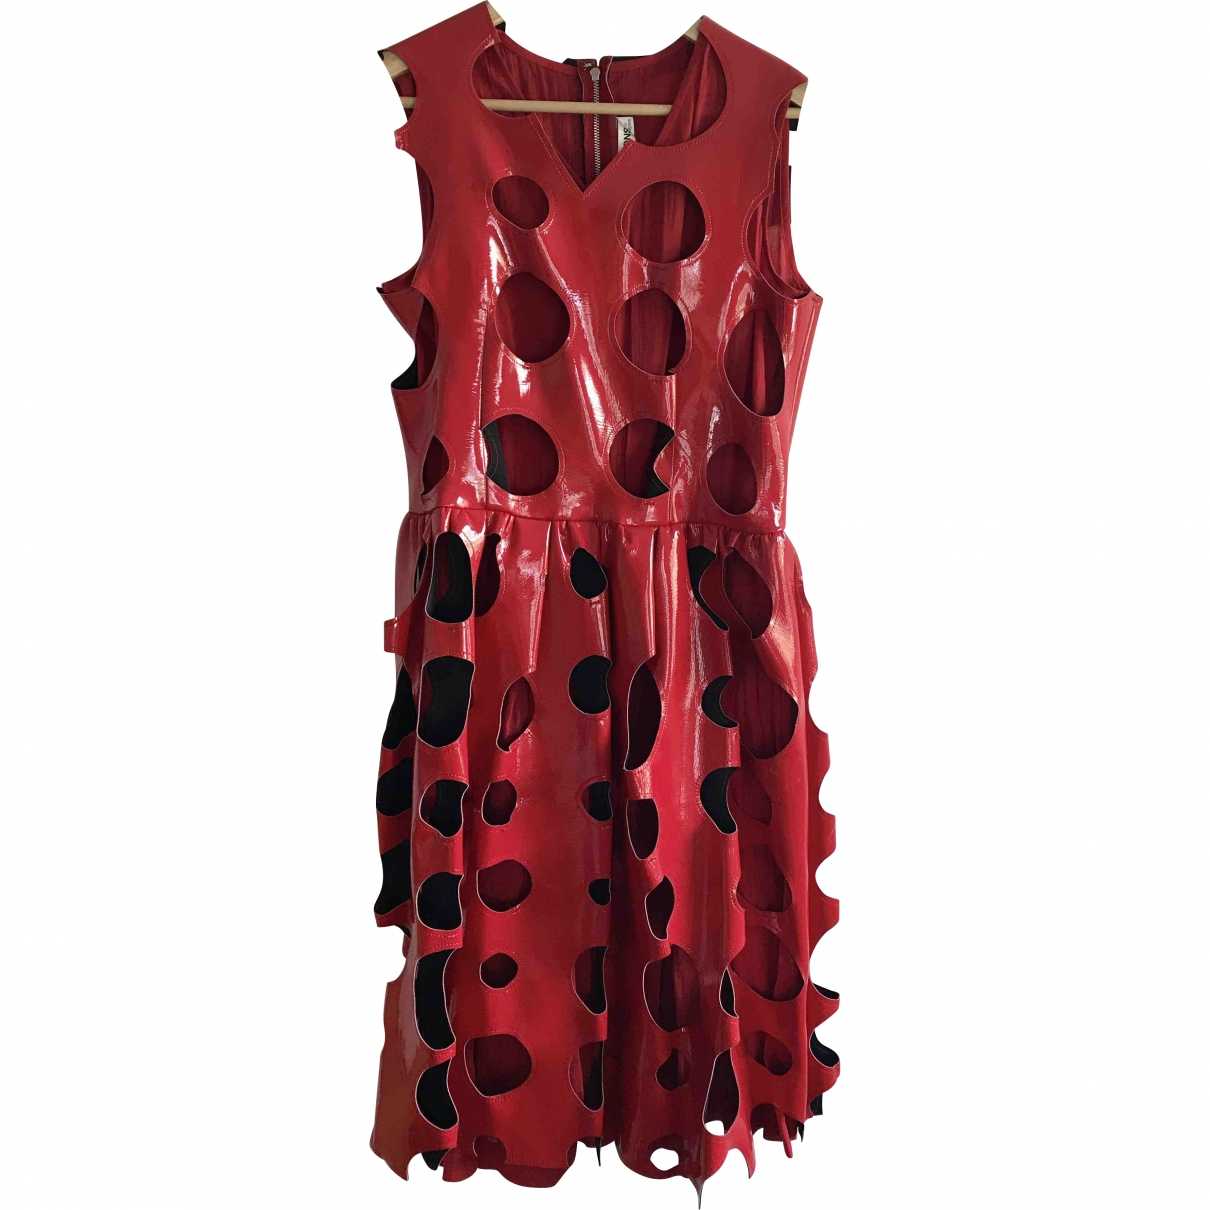 Comme Des Garcons \N Red dress for Women XS International